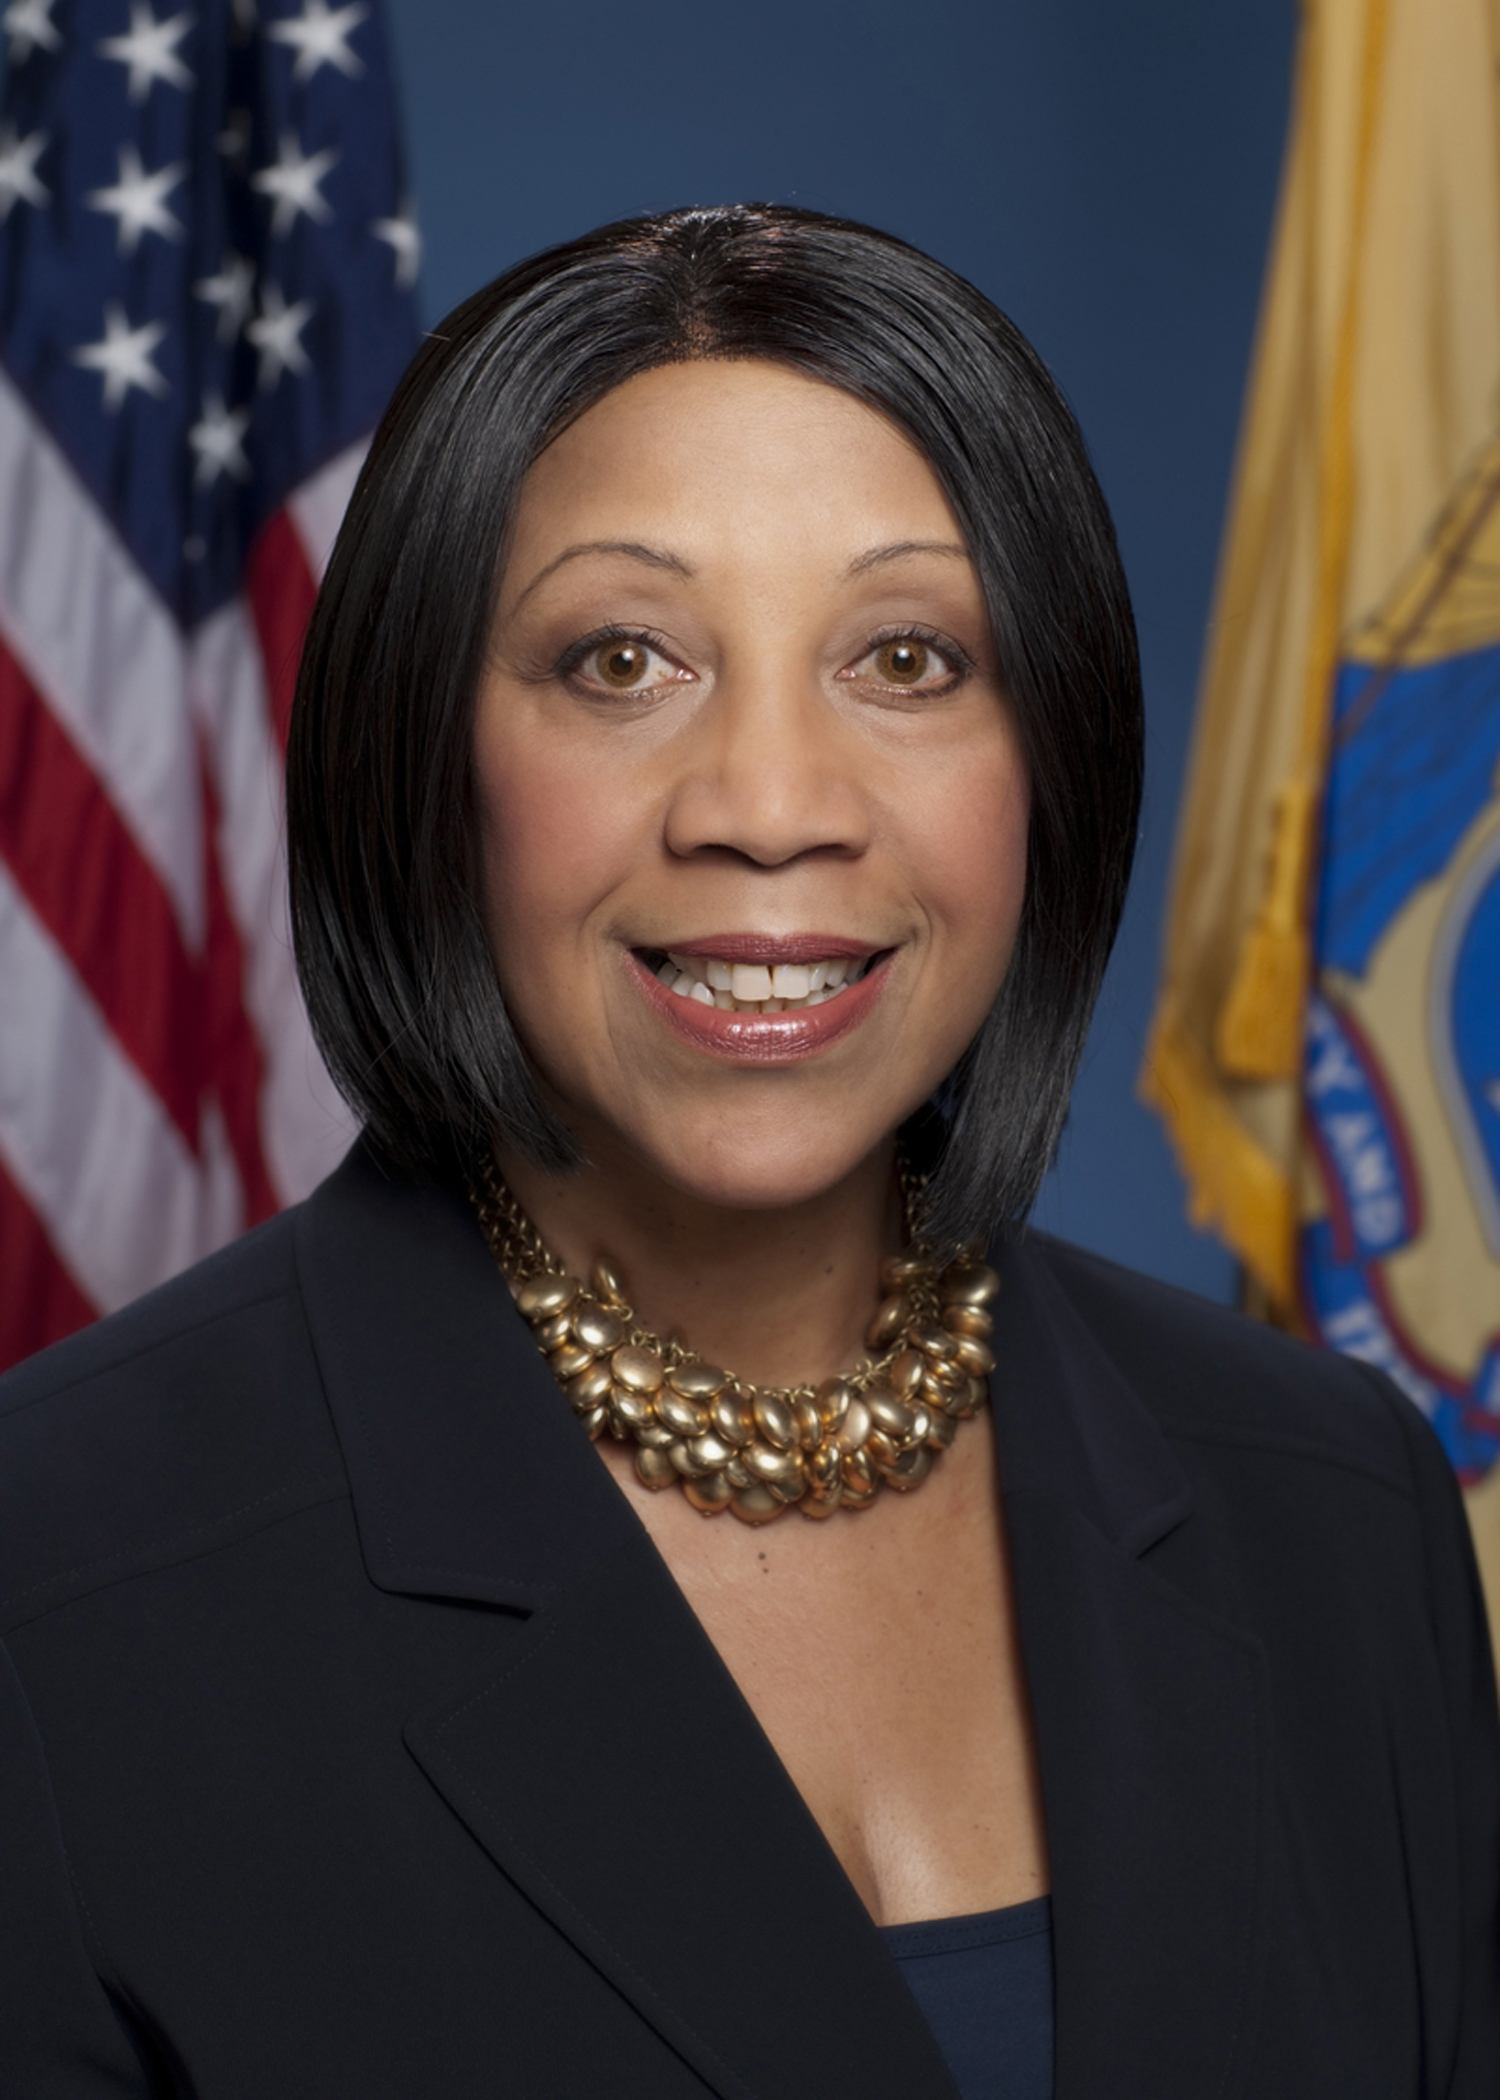 Sheila Oliver was elected as New Jersey's first African American woman lieutenant governor. She was previously the first Black woman elected as New Jersey's Assembly speaker, and the second Black female speaker in U.S. history, according to the Huffington Post.